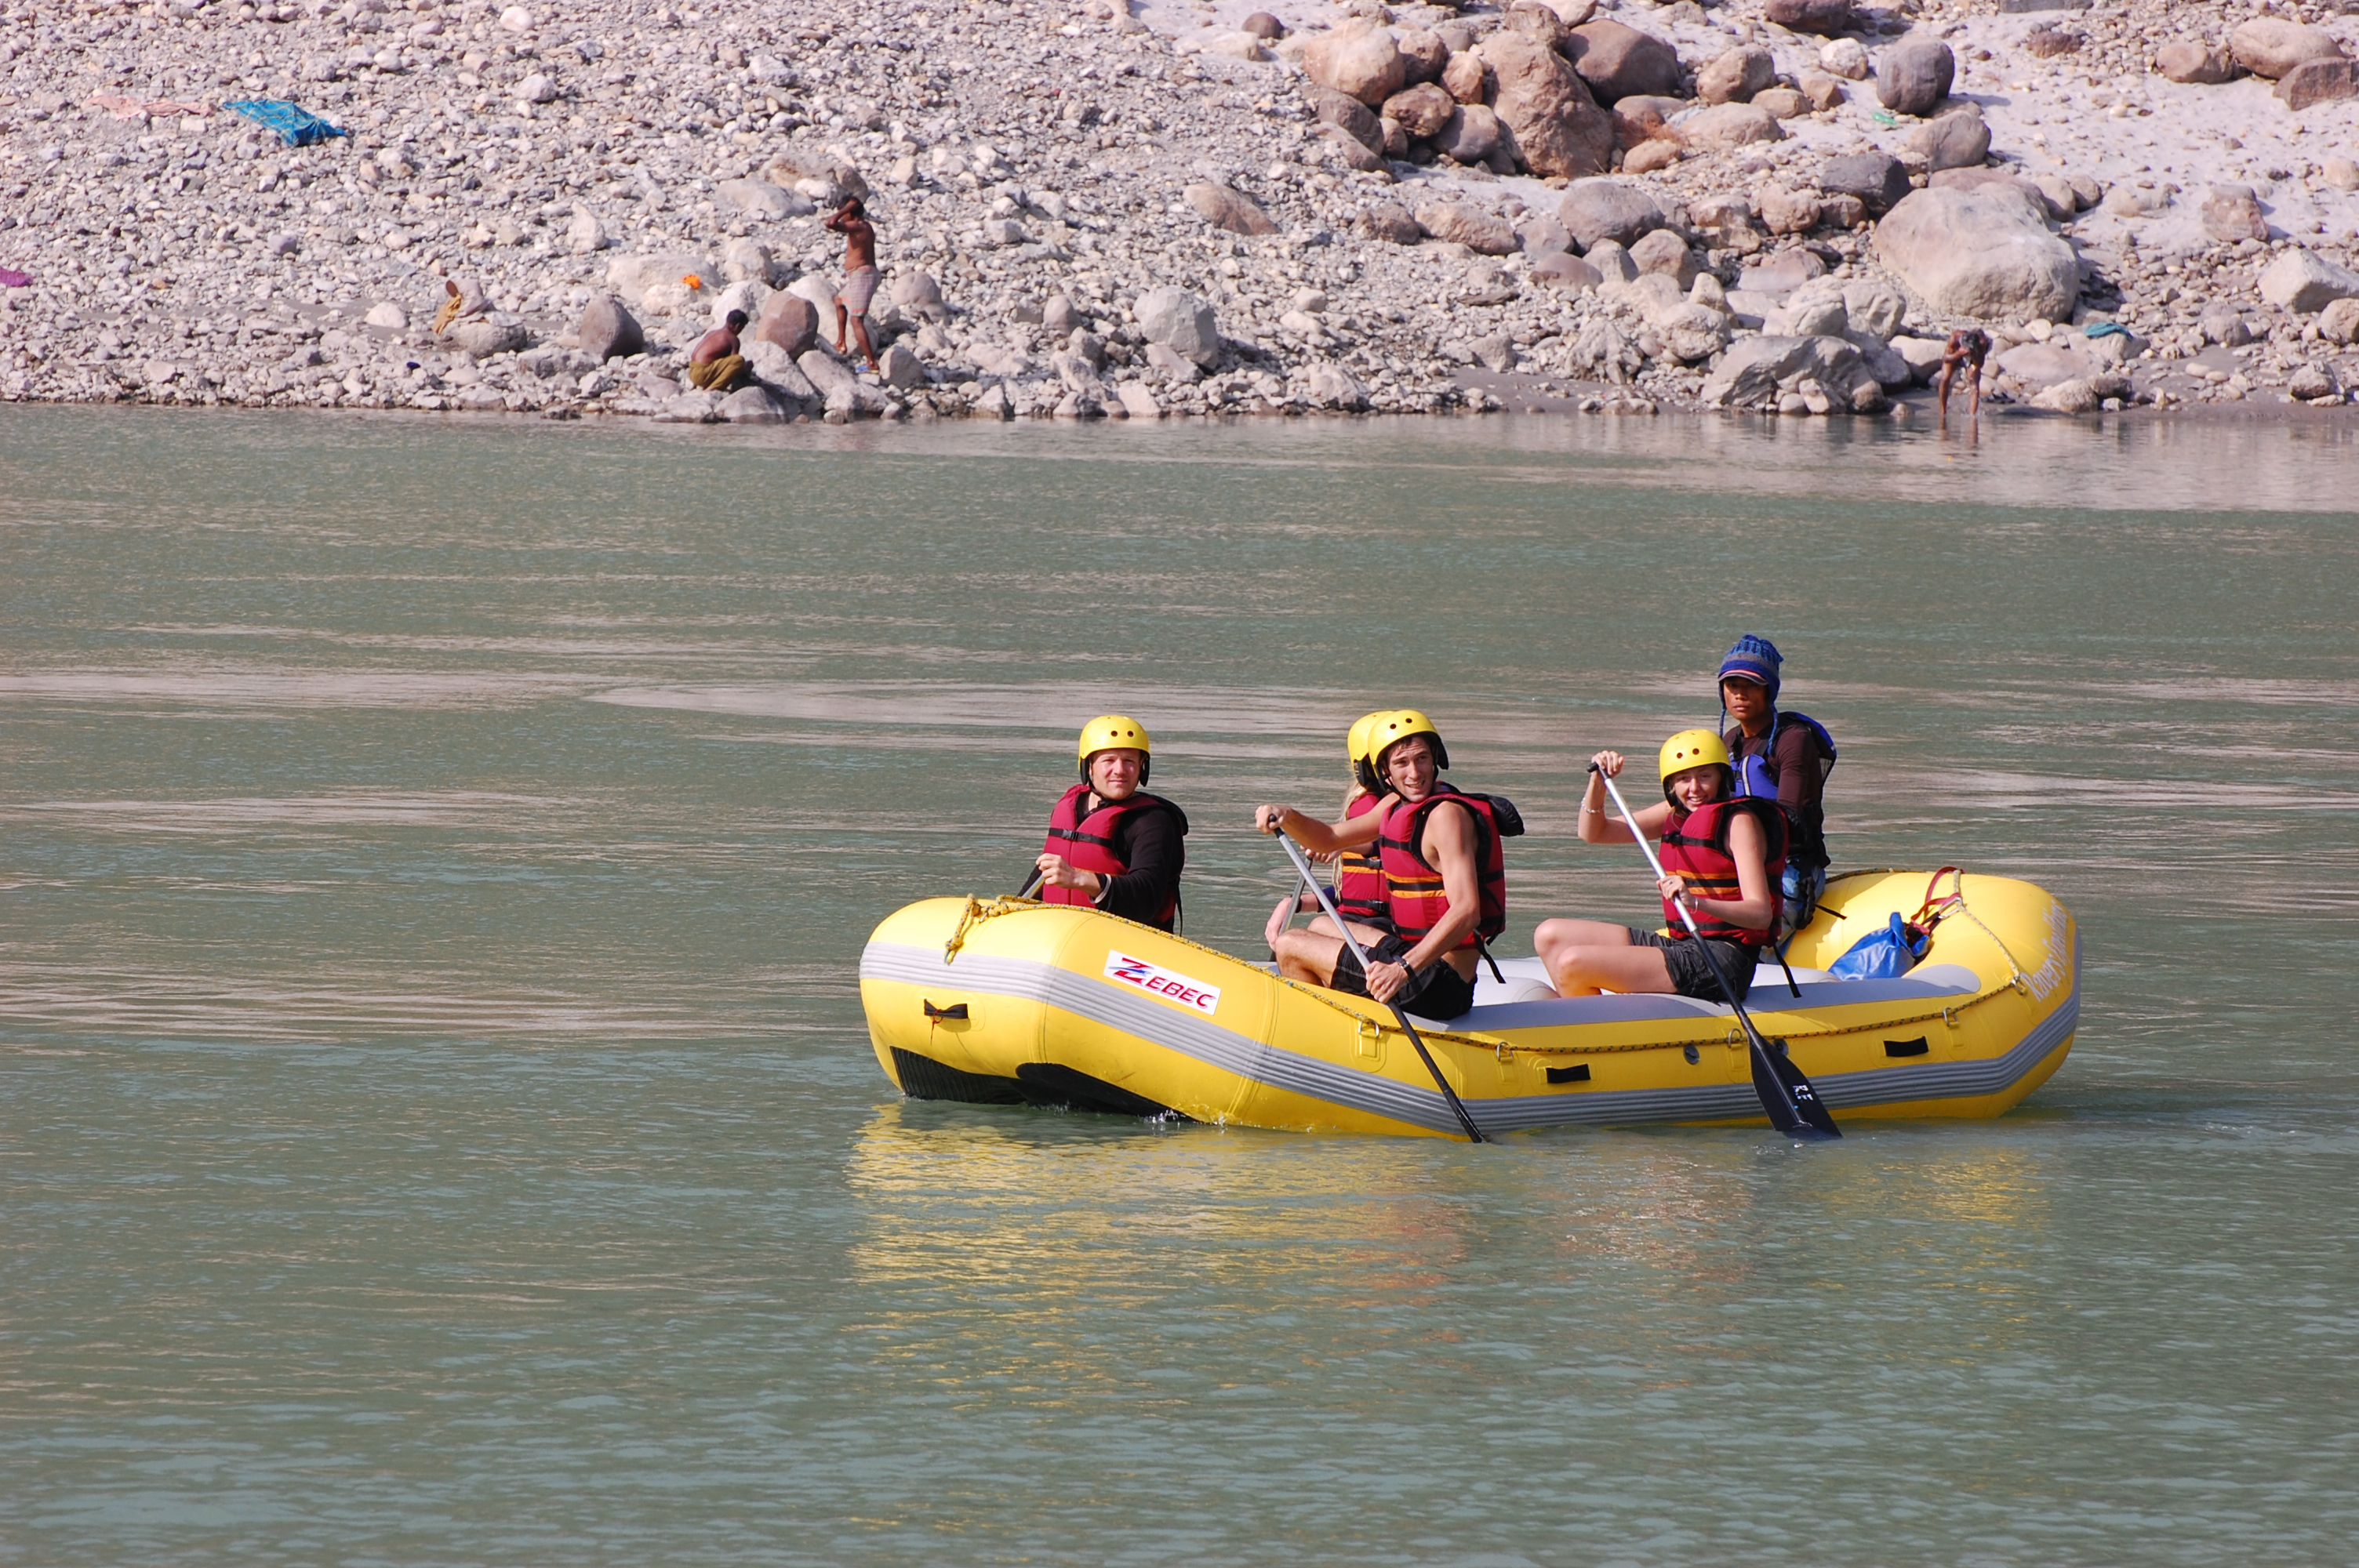 Click this image to download full resolution ganga-river-rafting